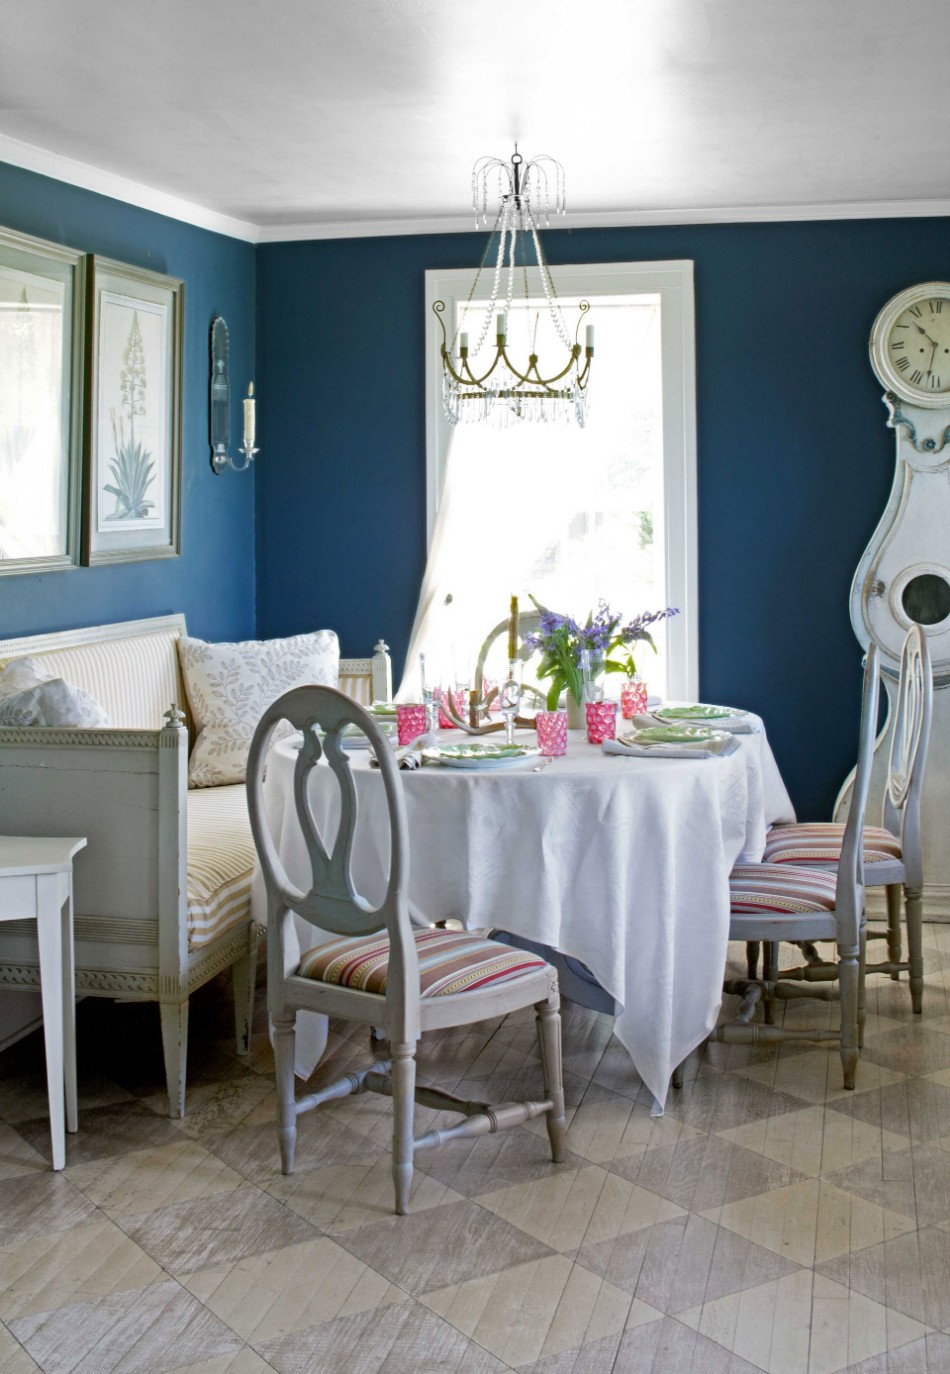 colors 10 Colors That Look Amazing In The Dining Room Area dark blue